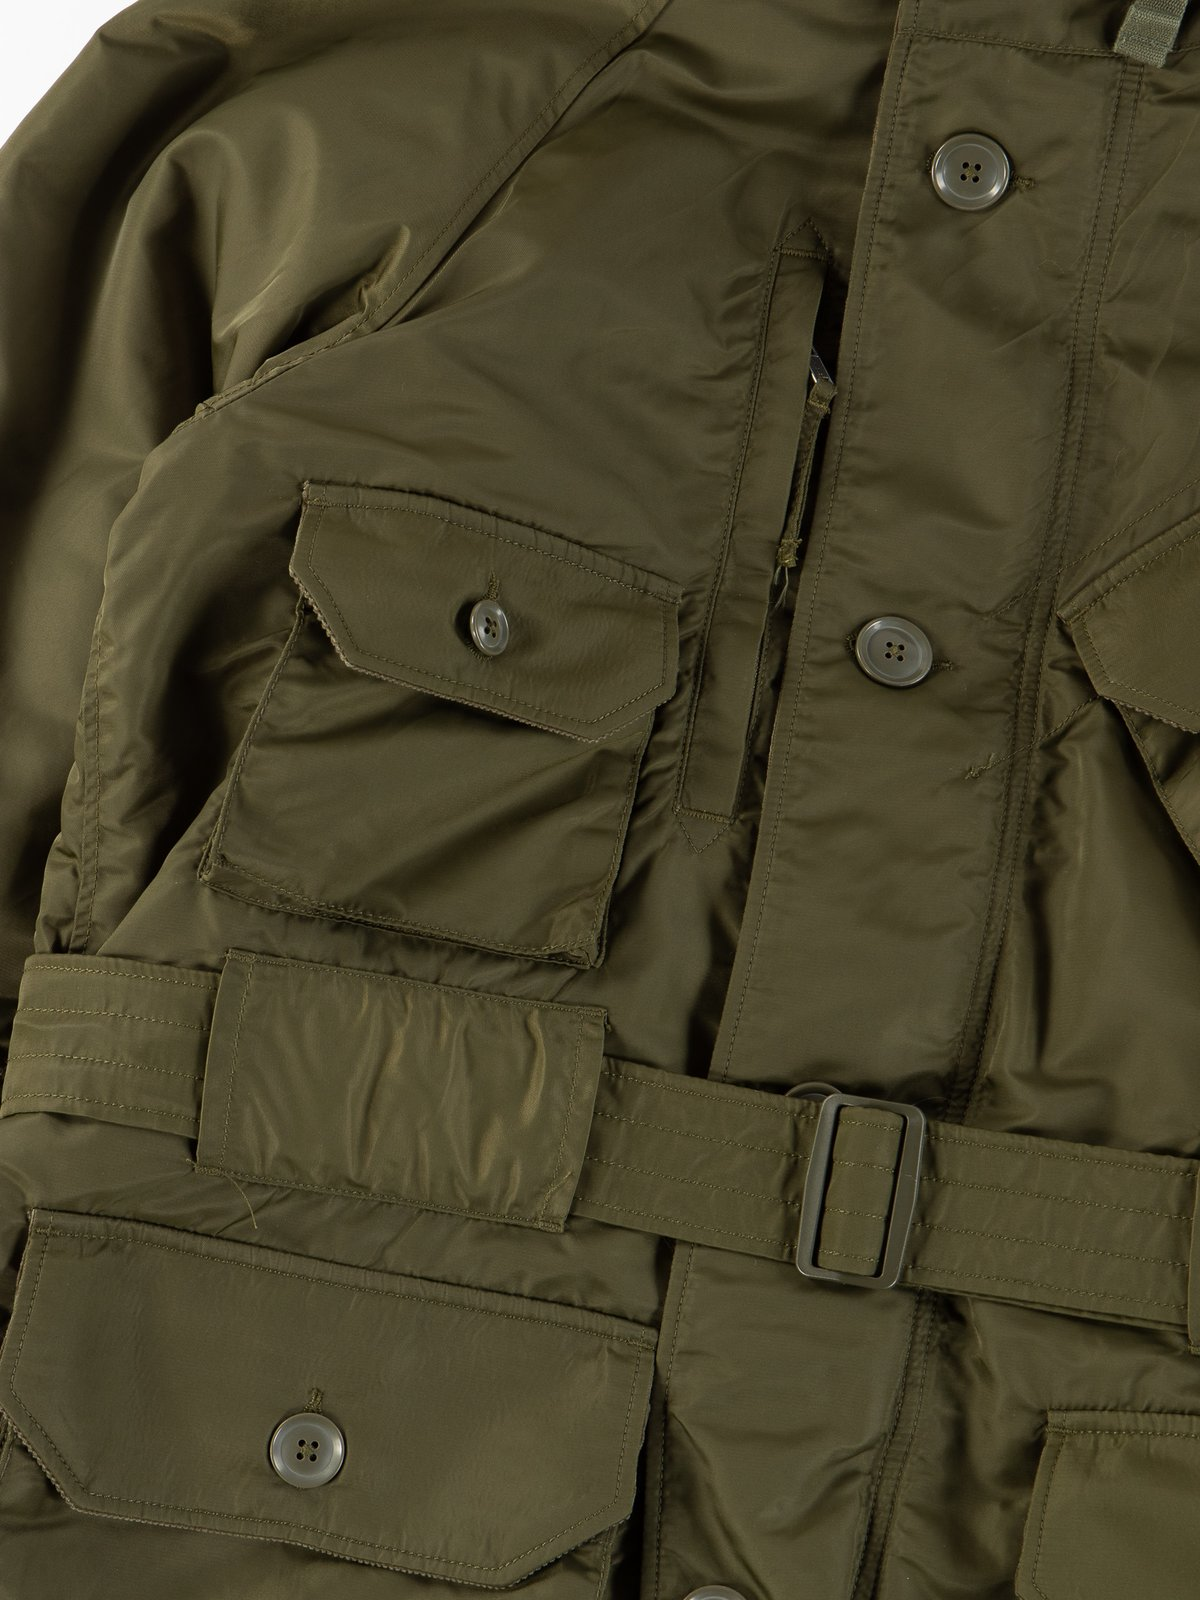 Olive Flight Satin Nylon Field Parka - Image 5